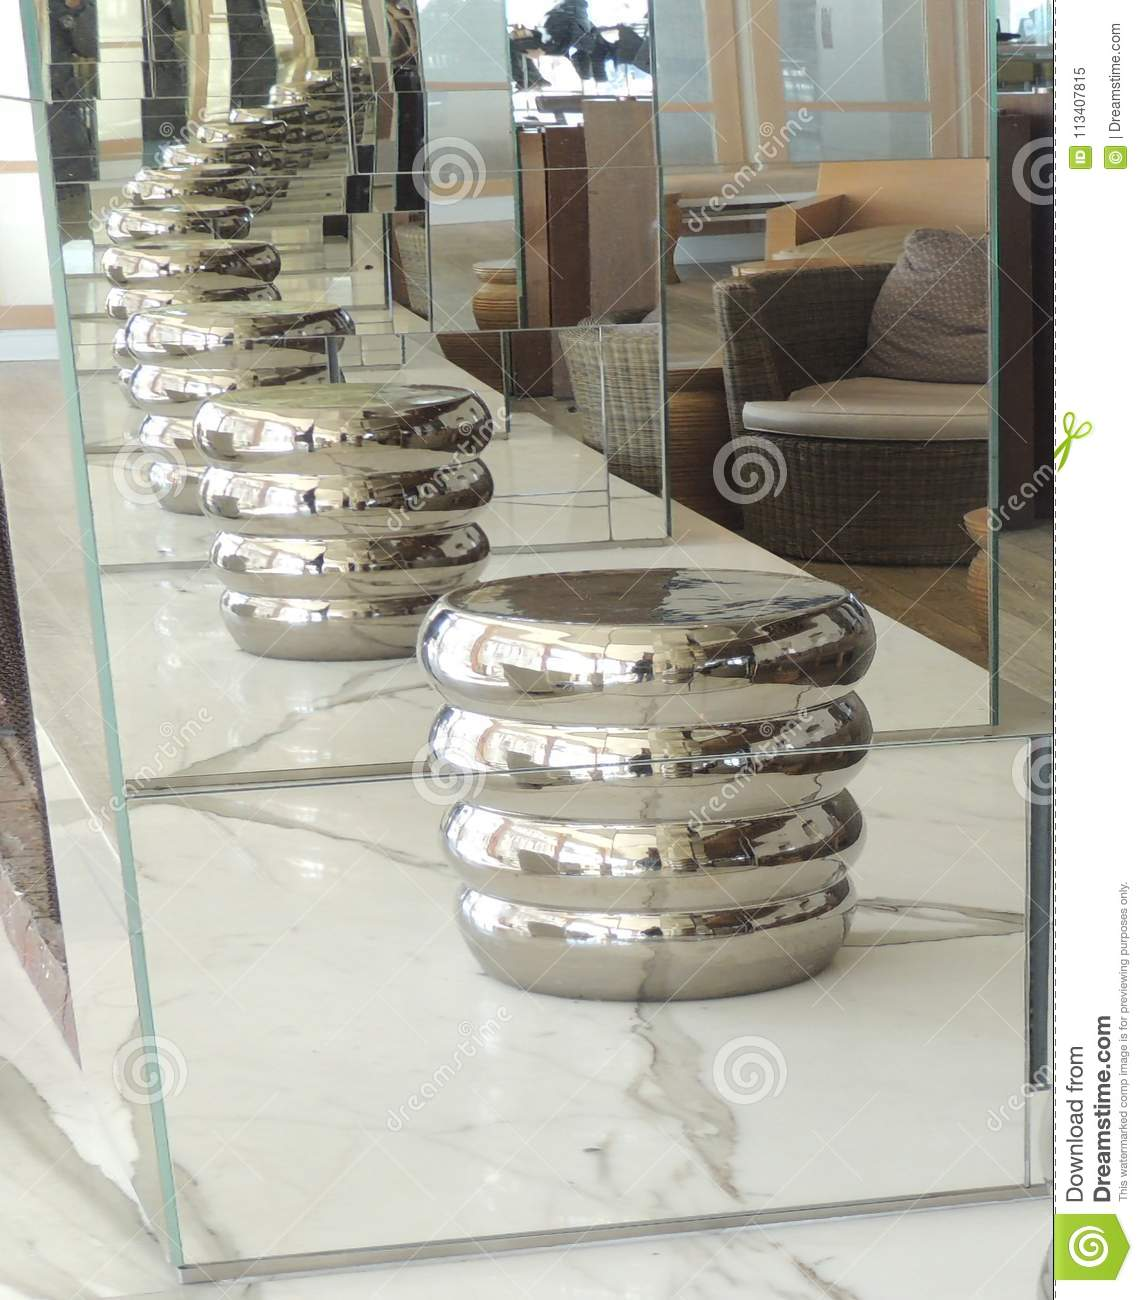 endless mirrors go on forever stock image image of great mirror